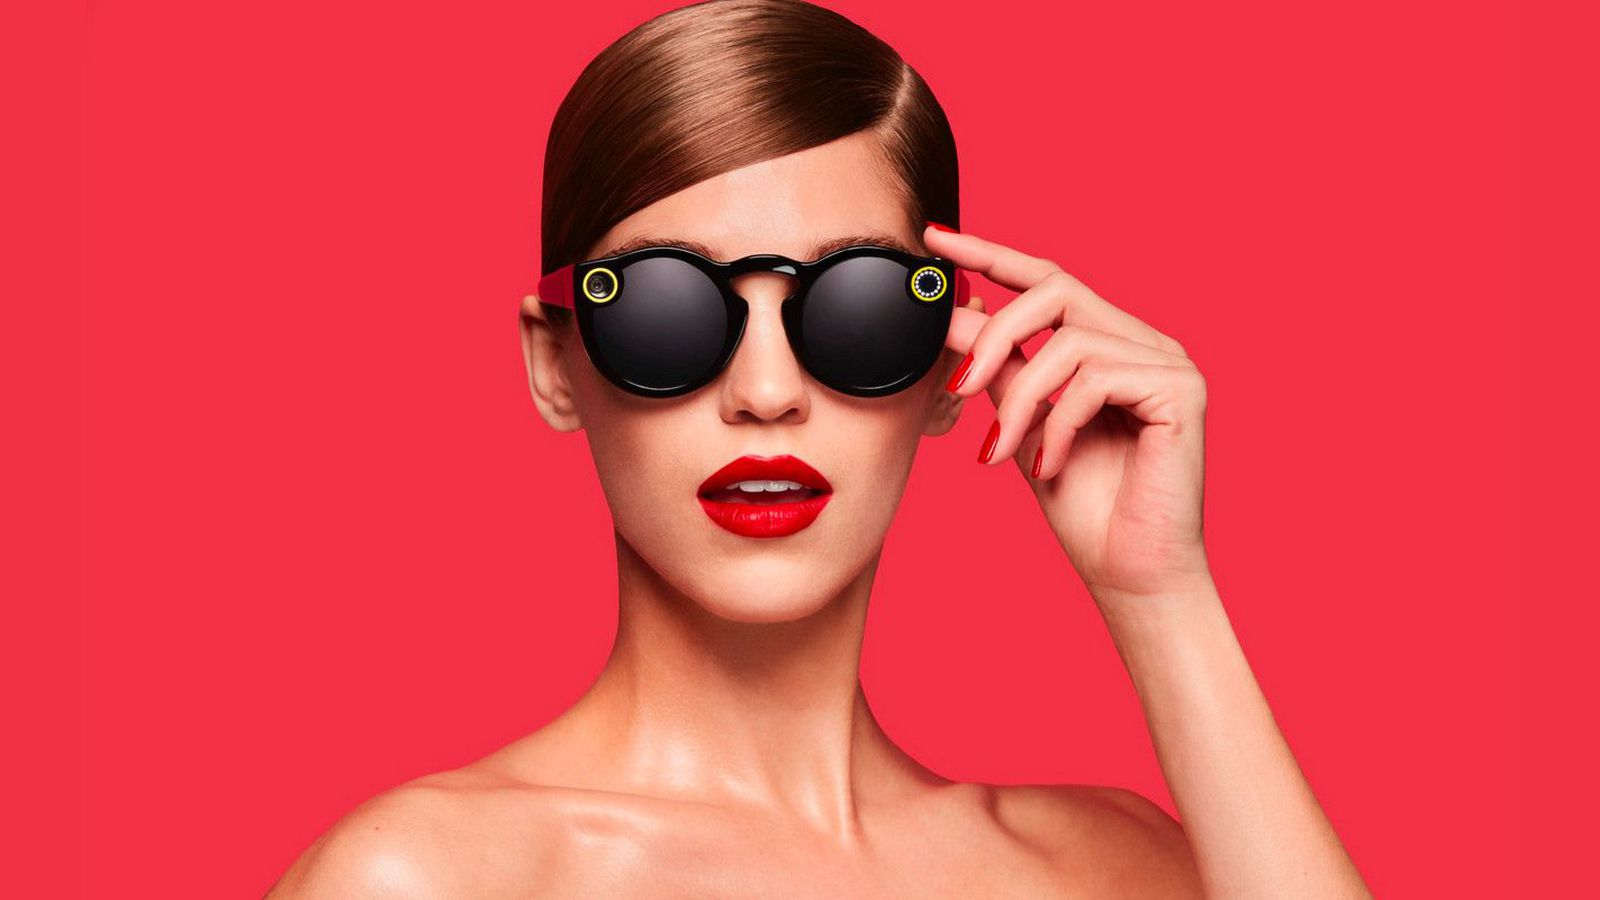 Costa Coffee: Snap Spectacles